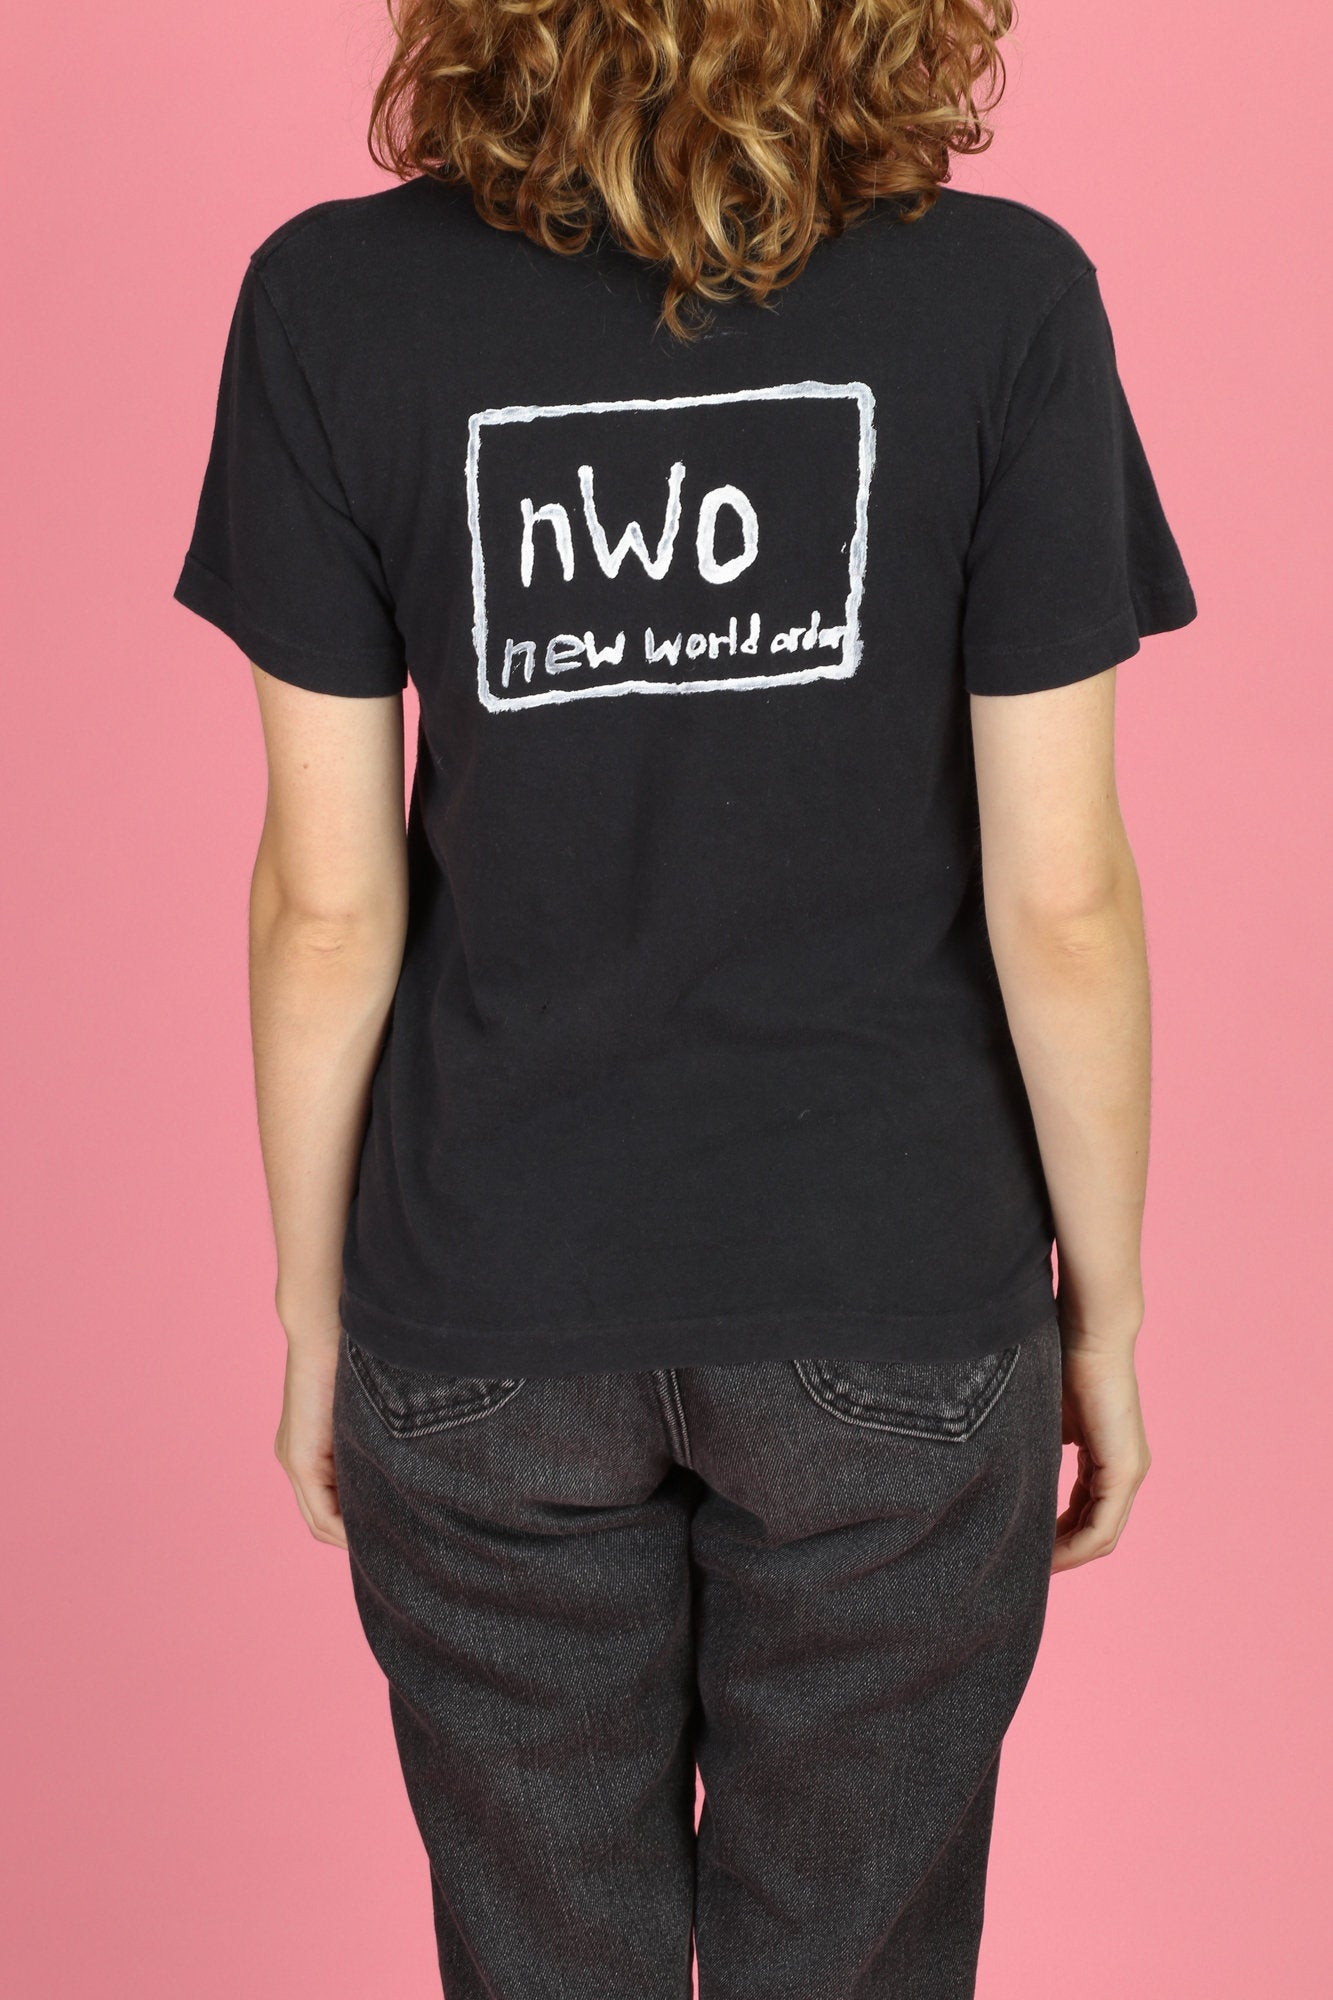 90s NWO New World Order Wrestling T Shirt - Small